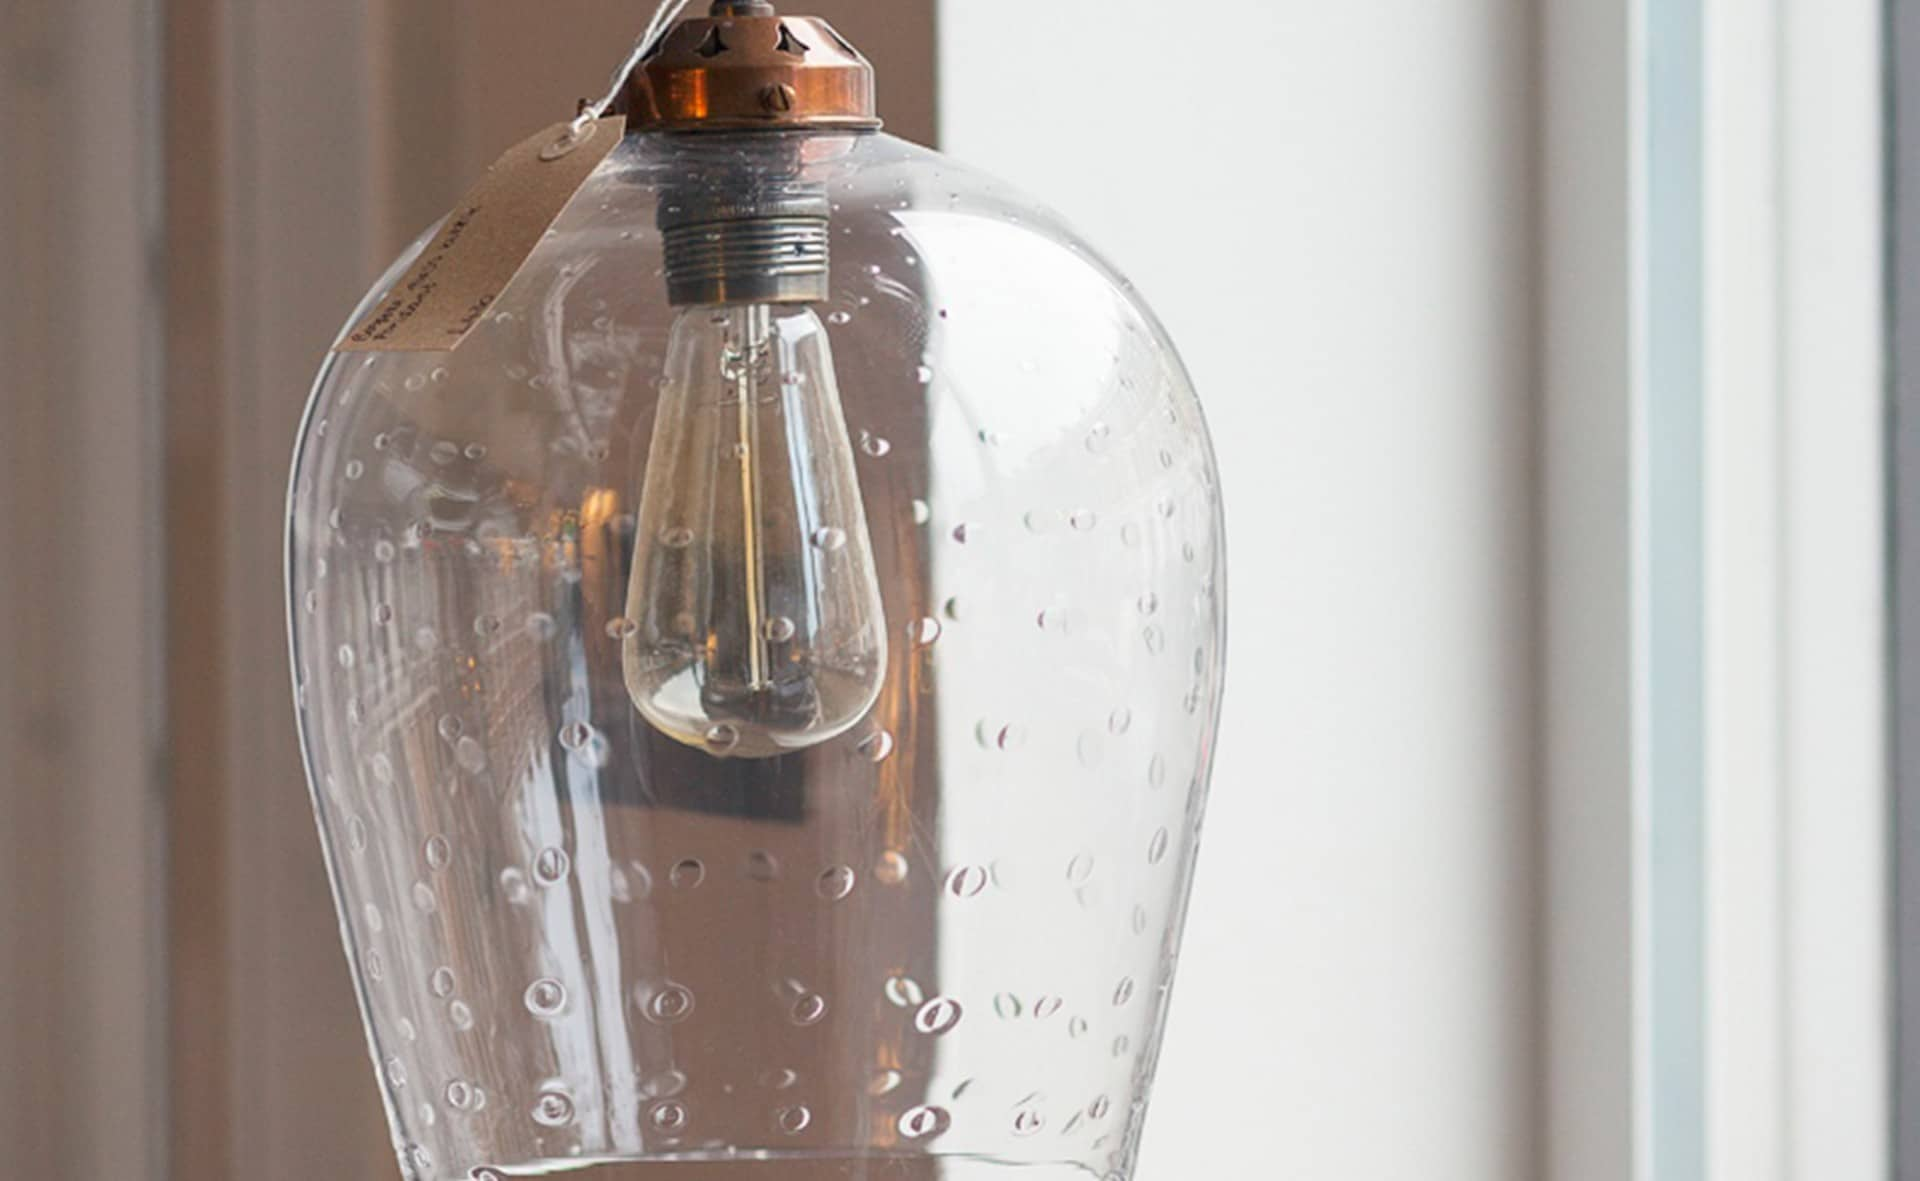 Product image for Bespoke Glass Bubbled Pendant Light